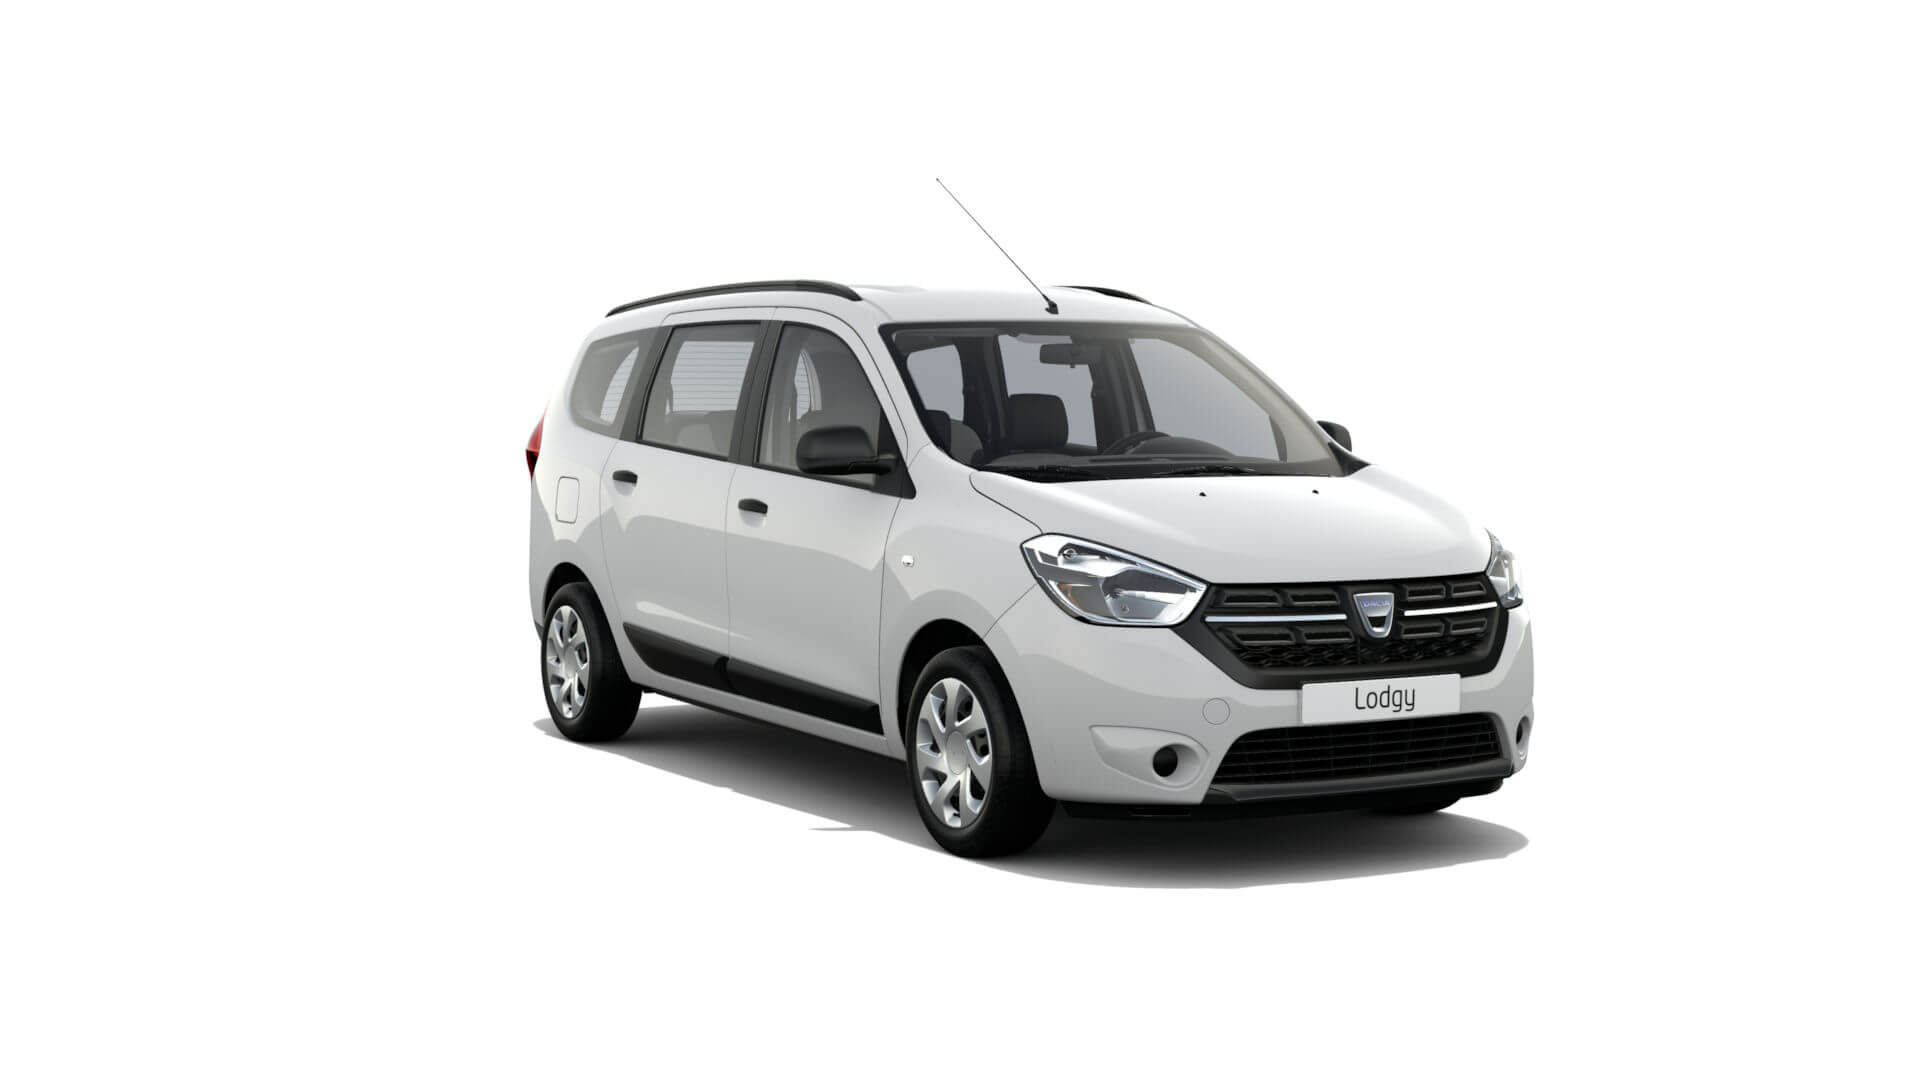 Automodell weiß - Dacia Lodgy - Renault Ahrens Hannover